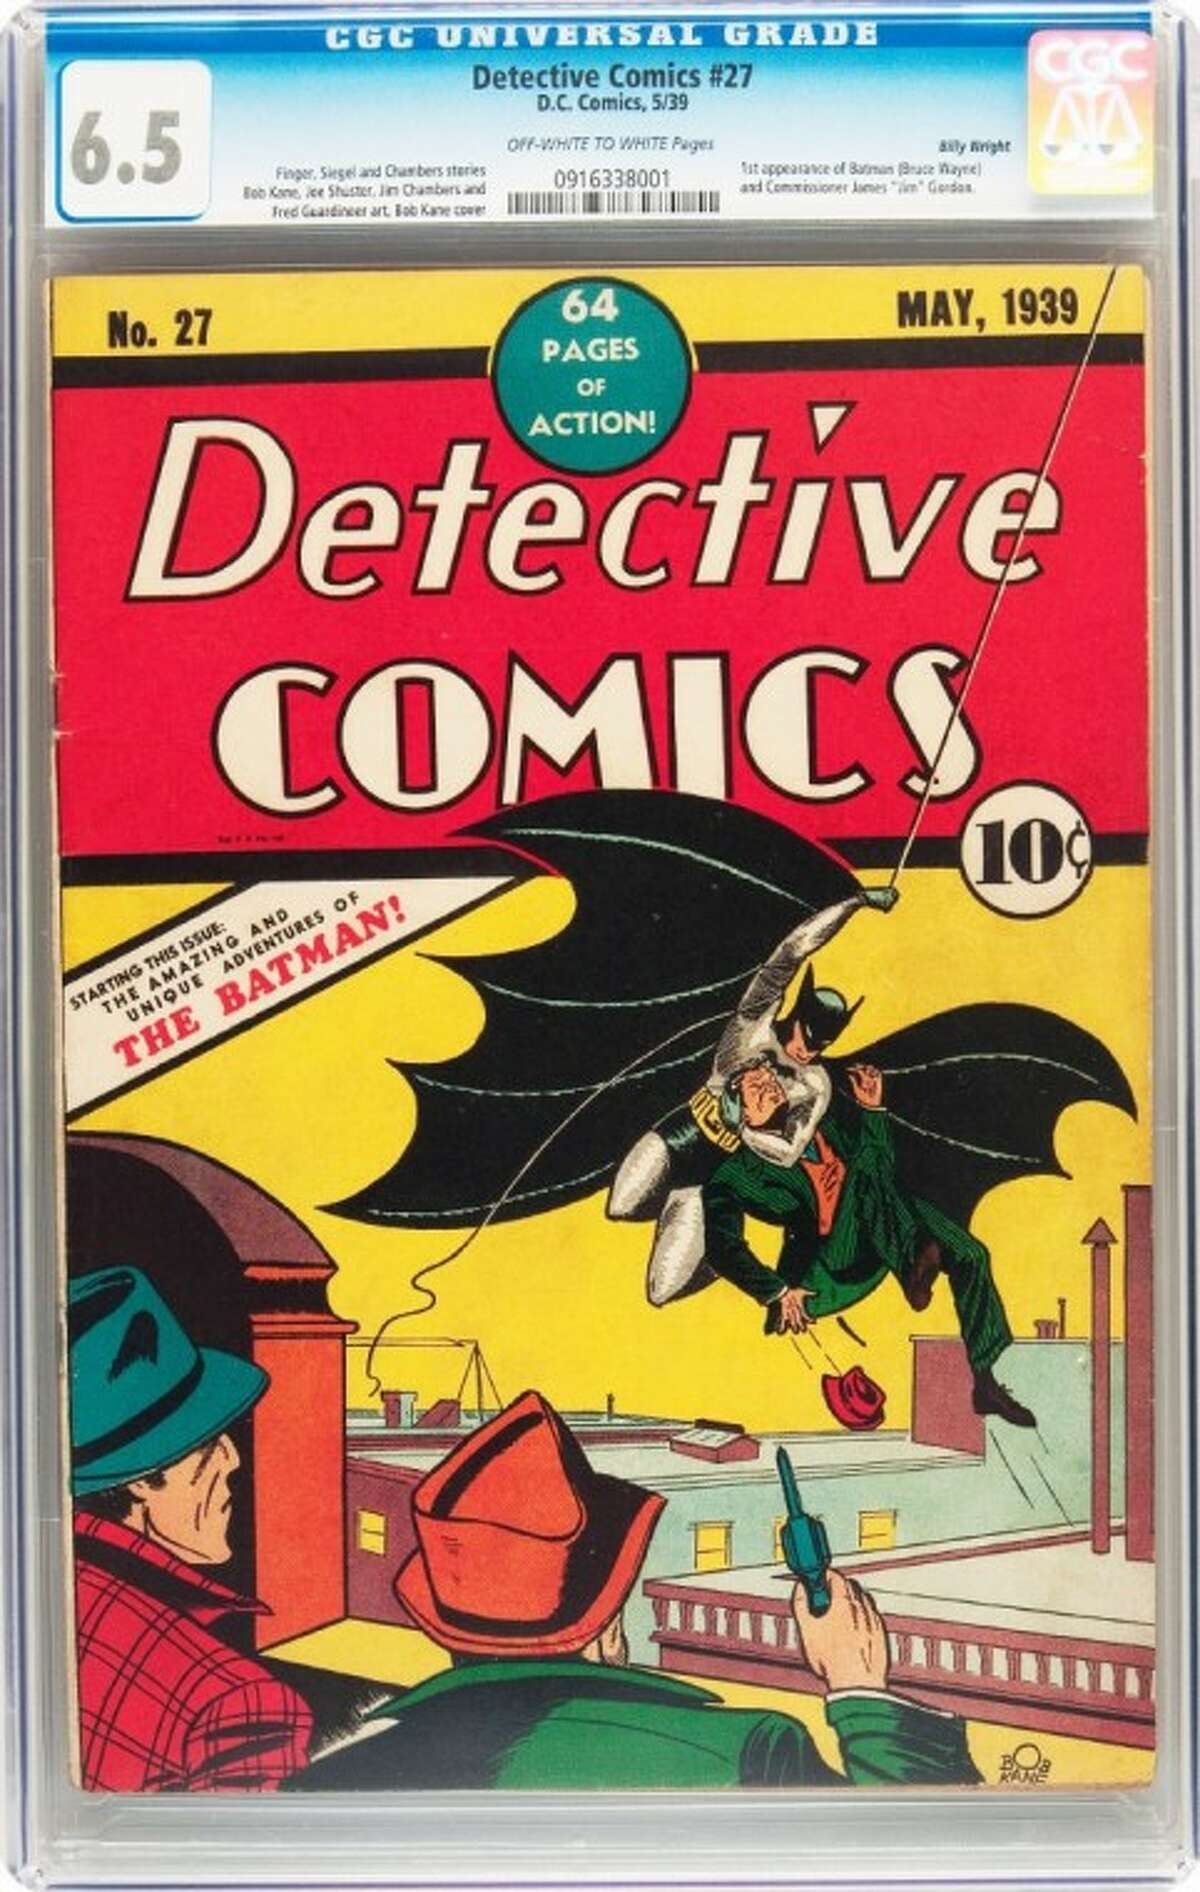 This Feb. 13 handout photo provided by Heritage Auction, shows the CGC-Certified 6.5 copy of Detective Comics #27 from the Billy Wright Collection at Heritage Auctions in Dallas.